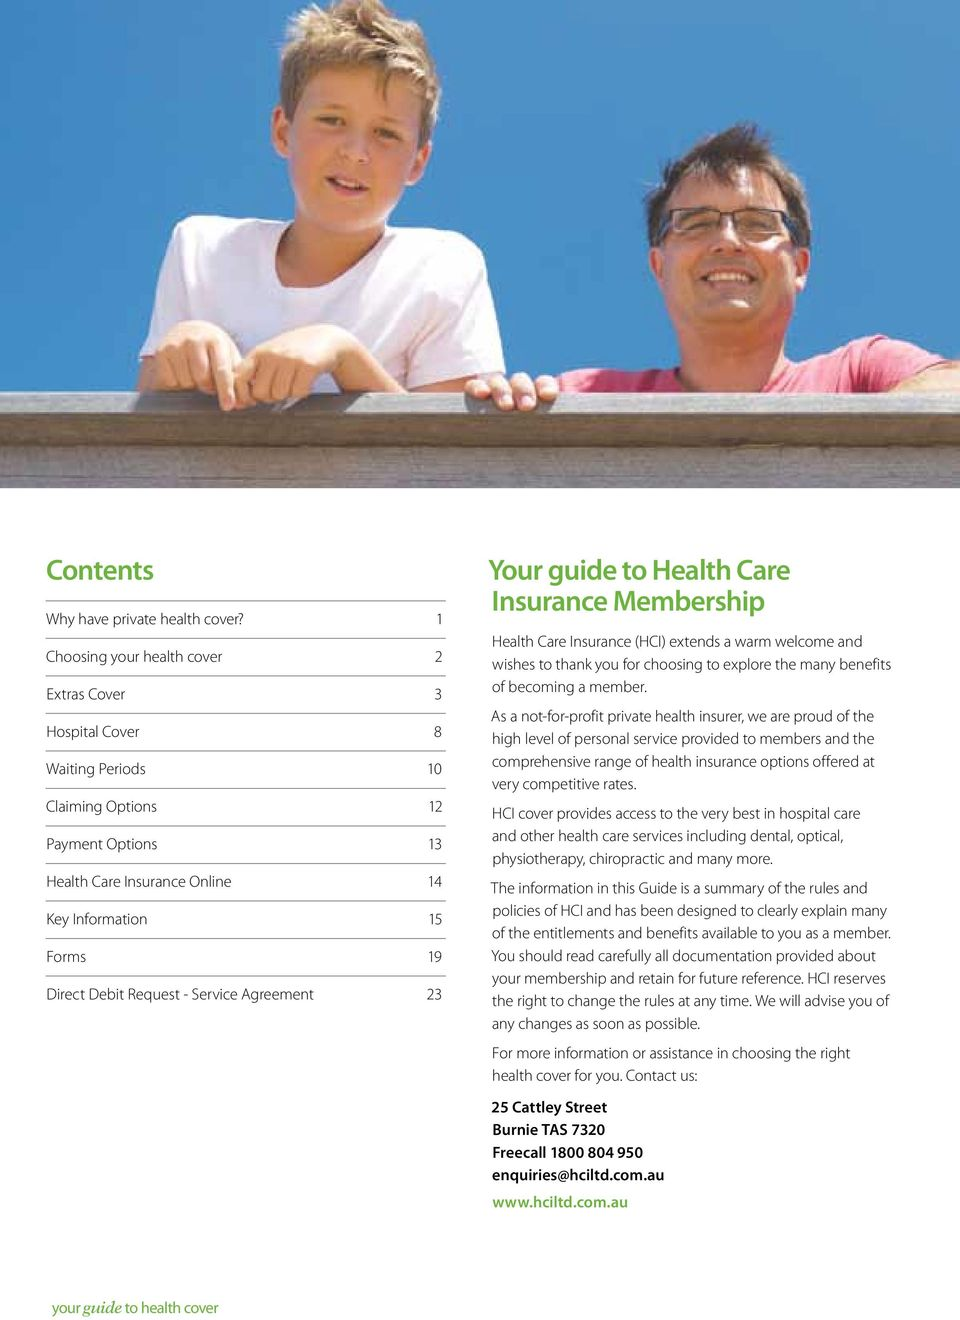 Request - Service Agreement 23 Your guide to Health Care Insurance Membership Health Care Insurance (HCI) extends a warm welcome and wishes to thank you for choosing to explore the many benefits of